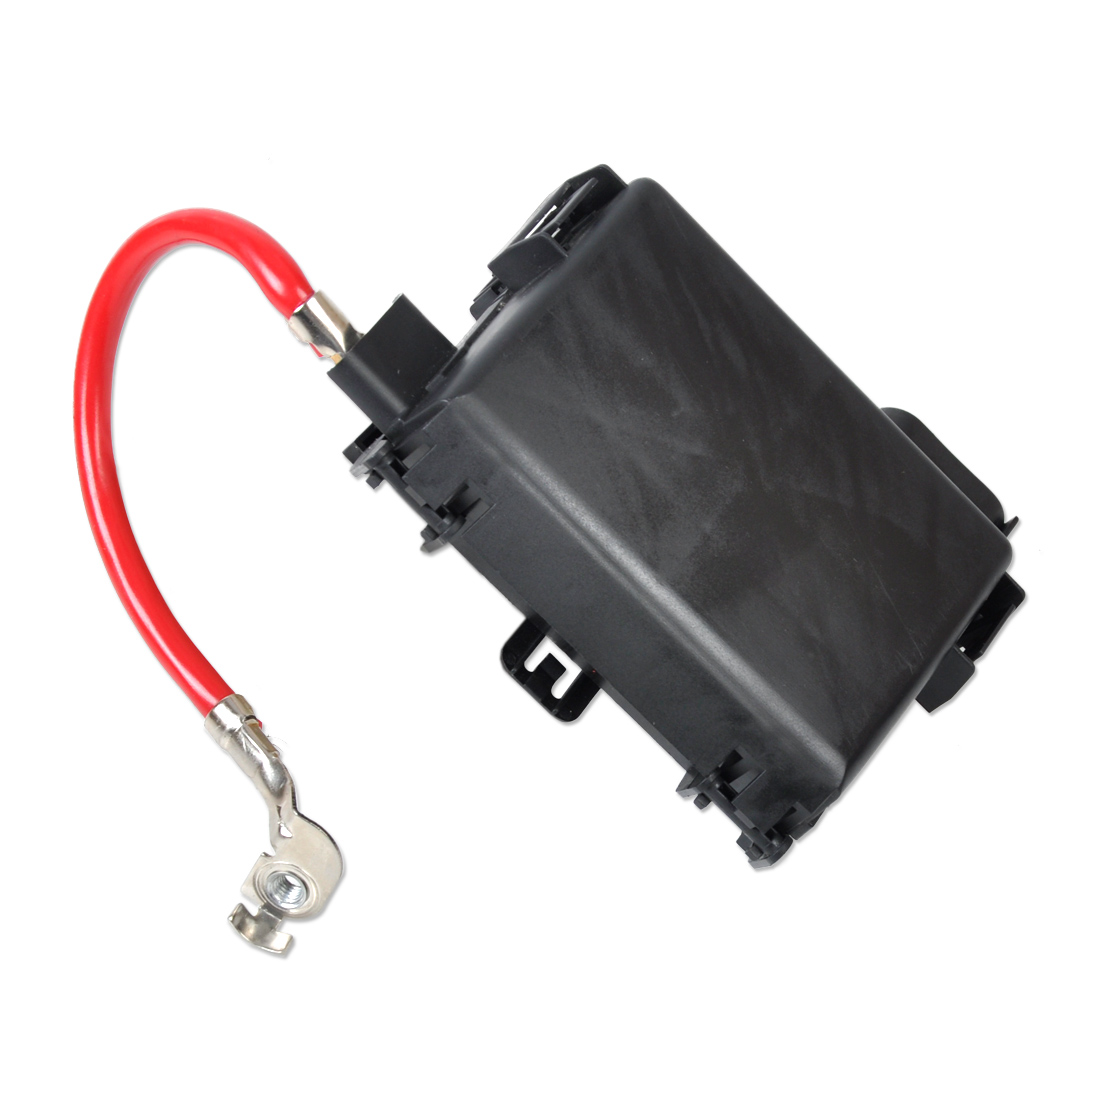 hight resolution of details about for vw jetta beetle bora golf city audi a3 fuse box battery terminal 1j0937550a